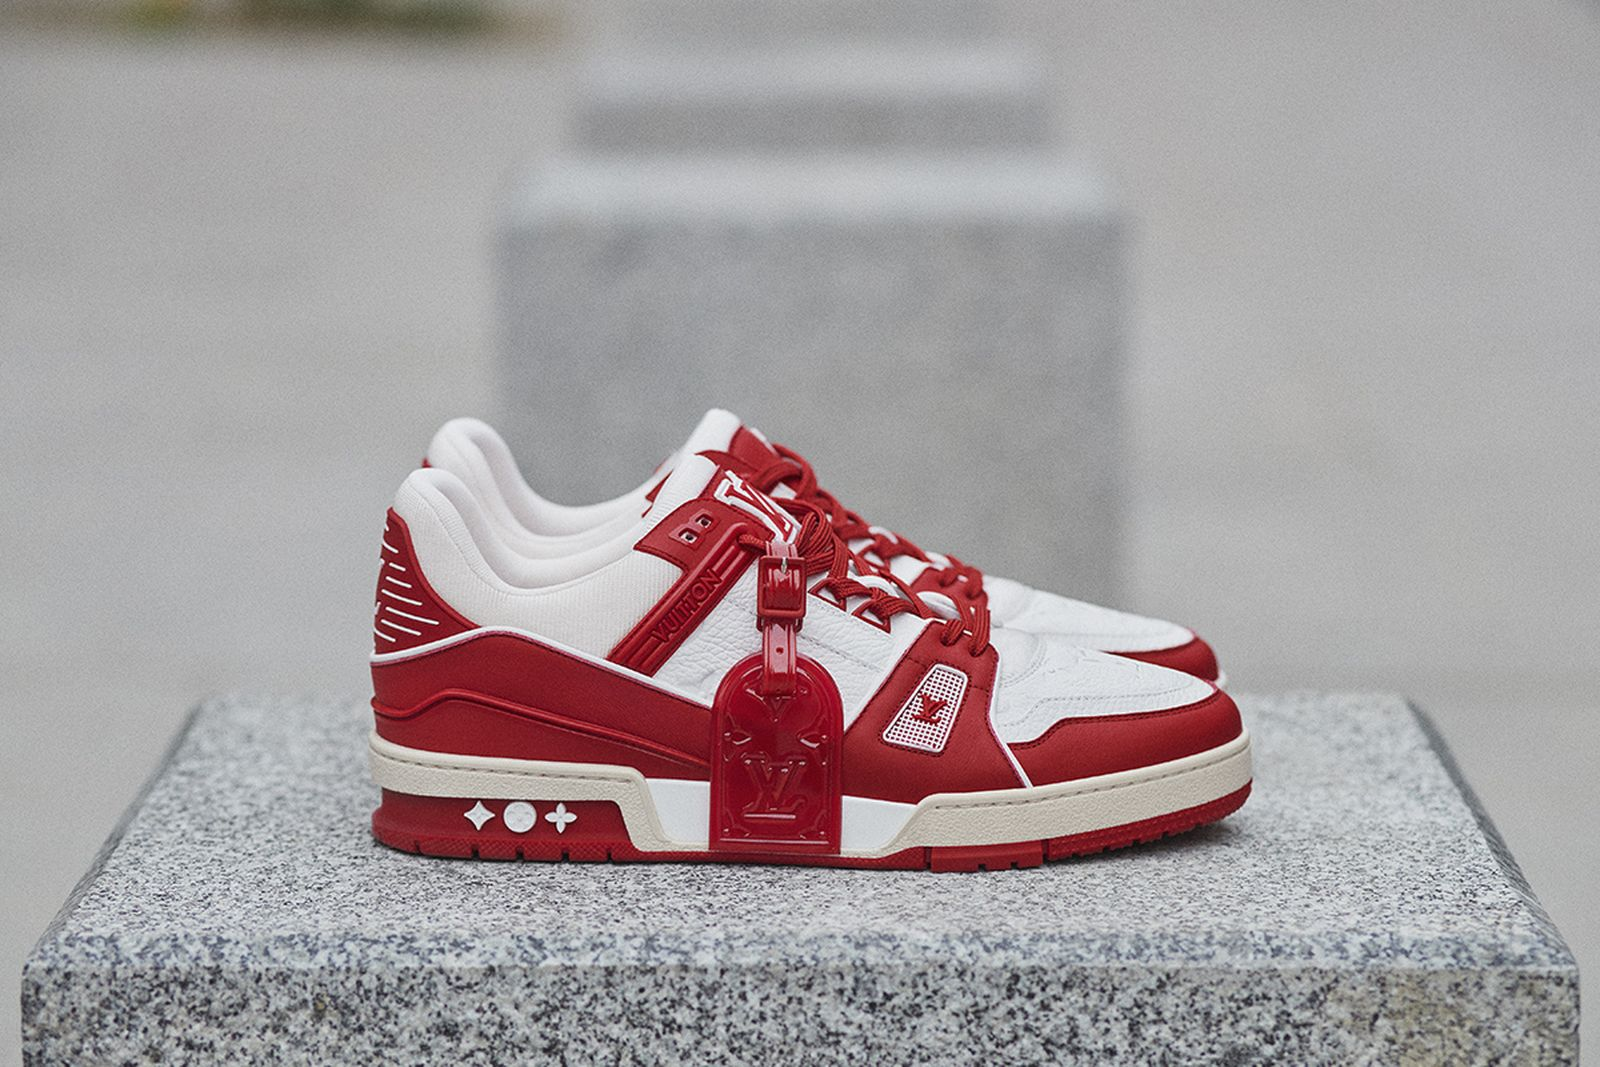 louis-vuitton-red-lv-trainer-release-date-price-04